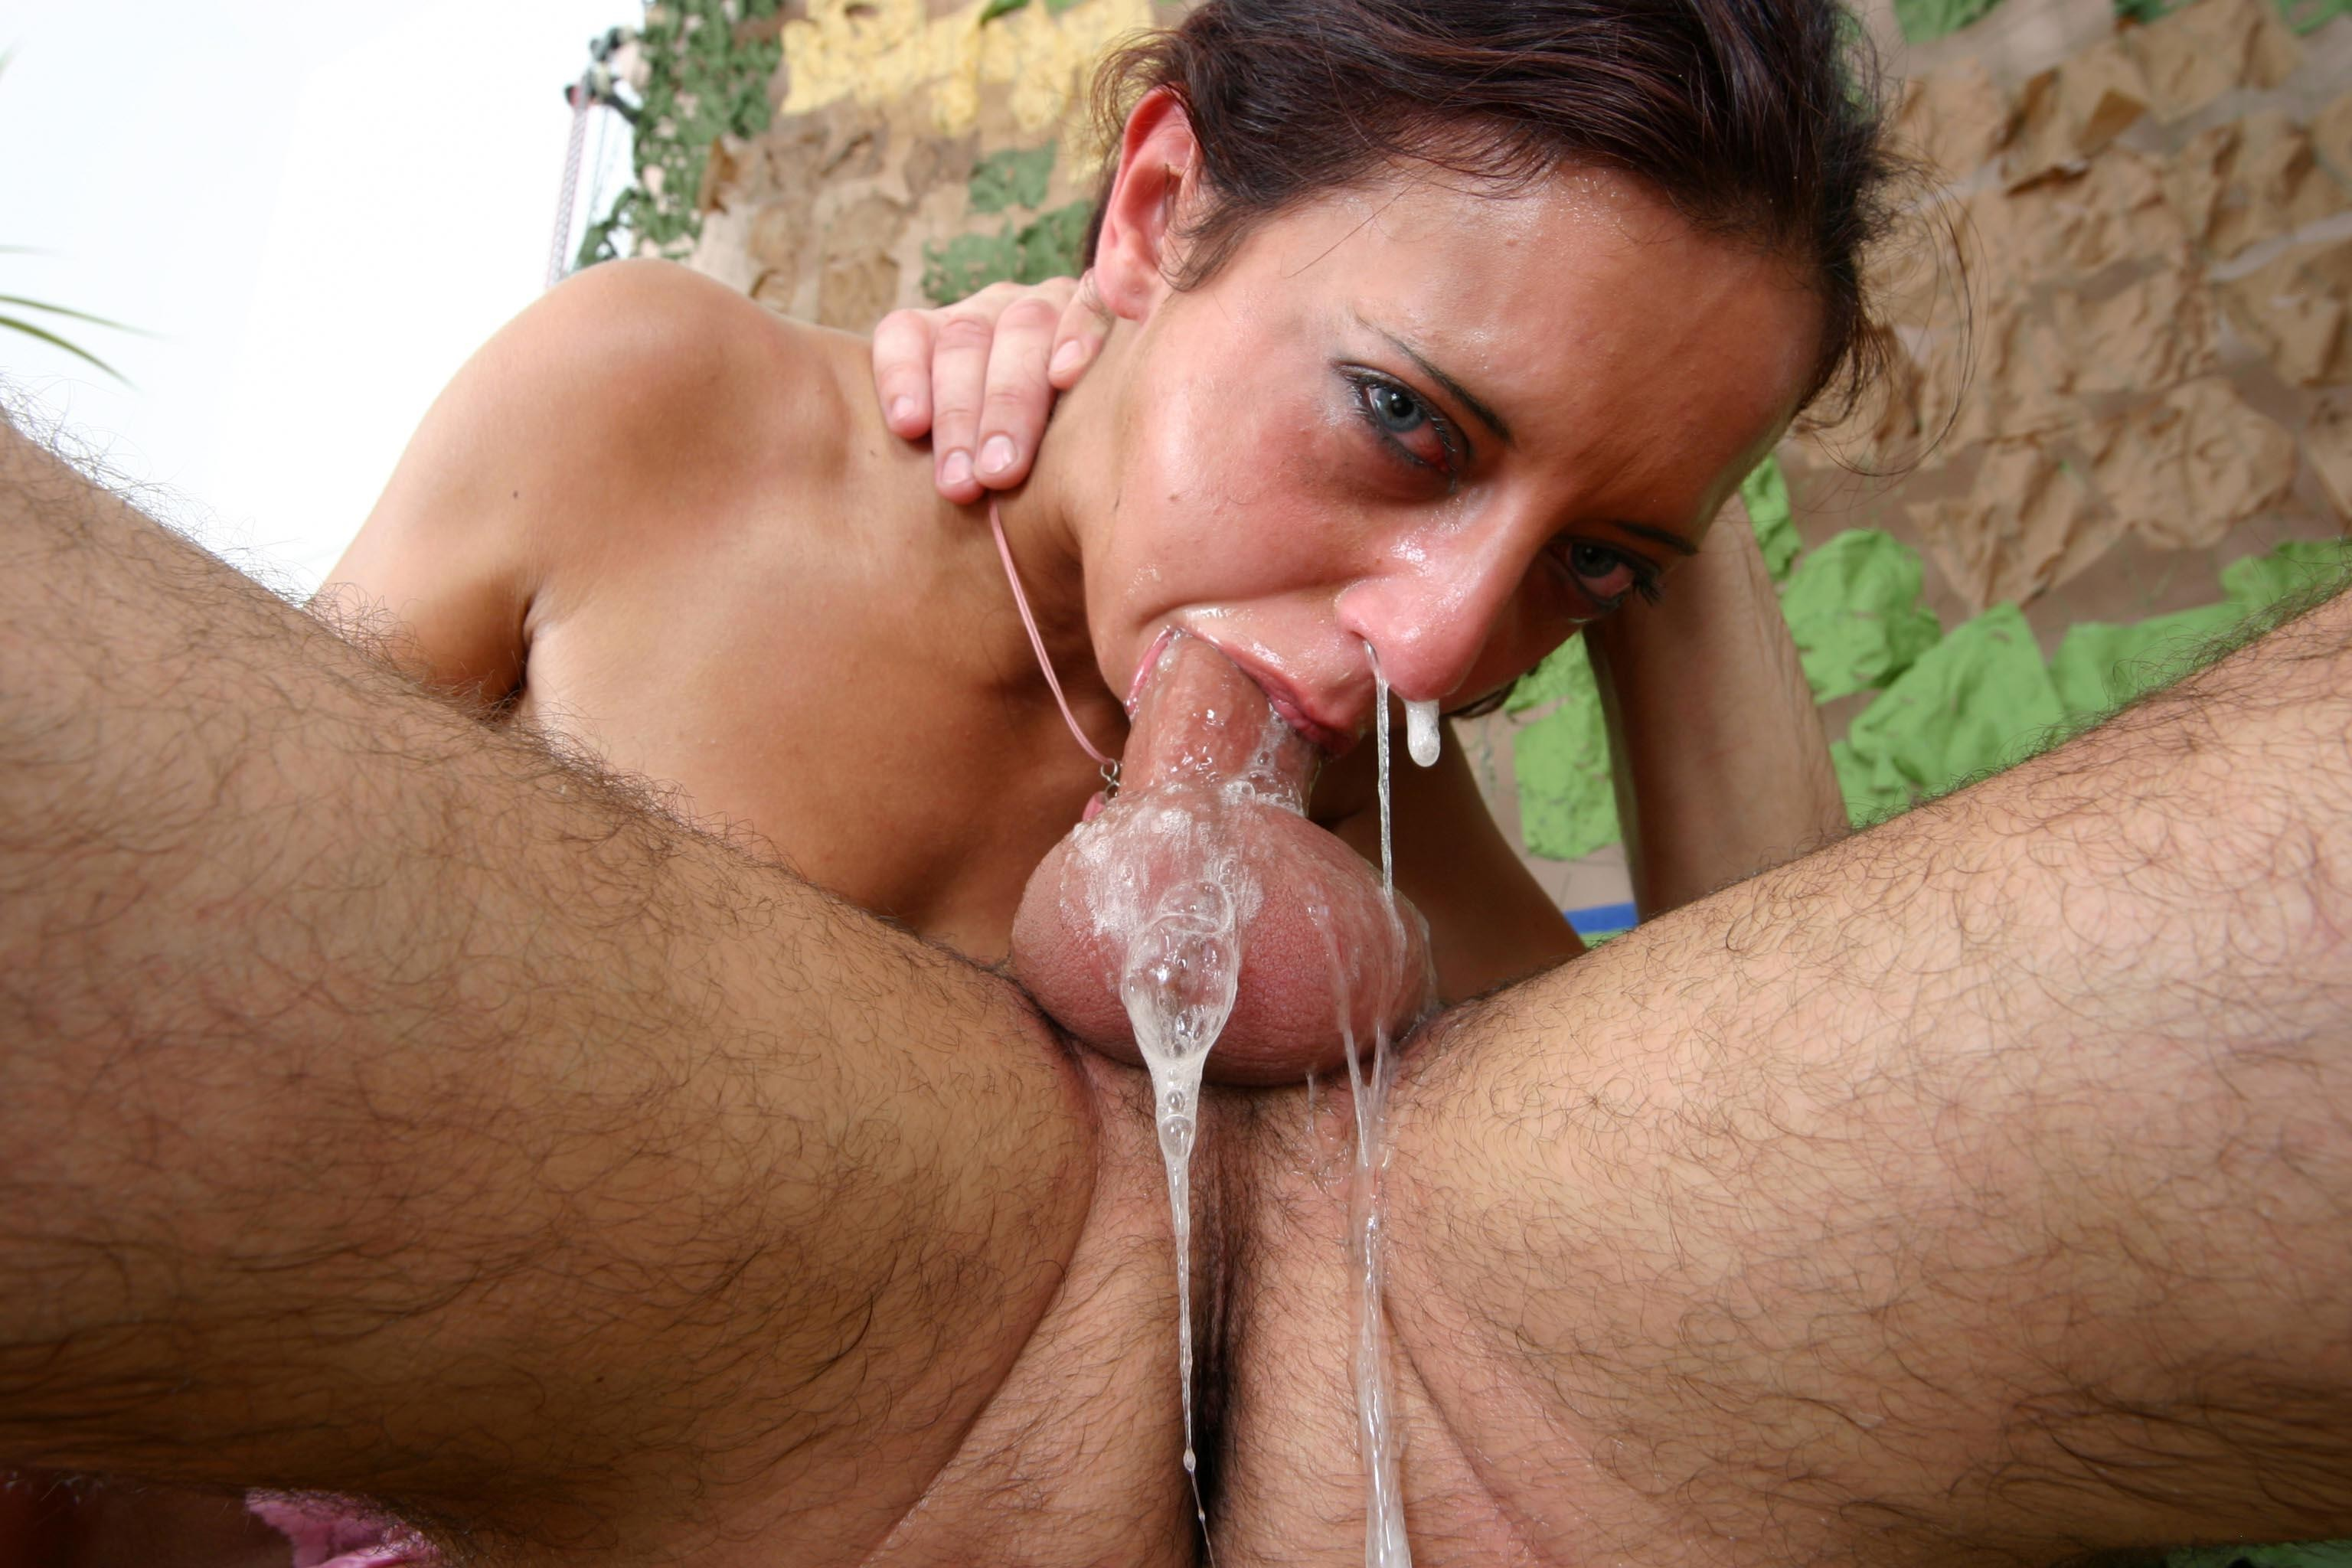 deepthroat-videos-free-galleries